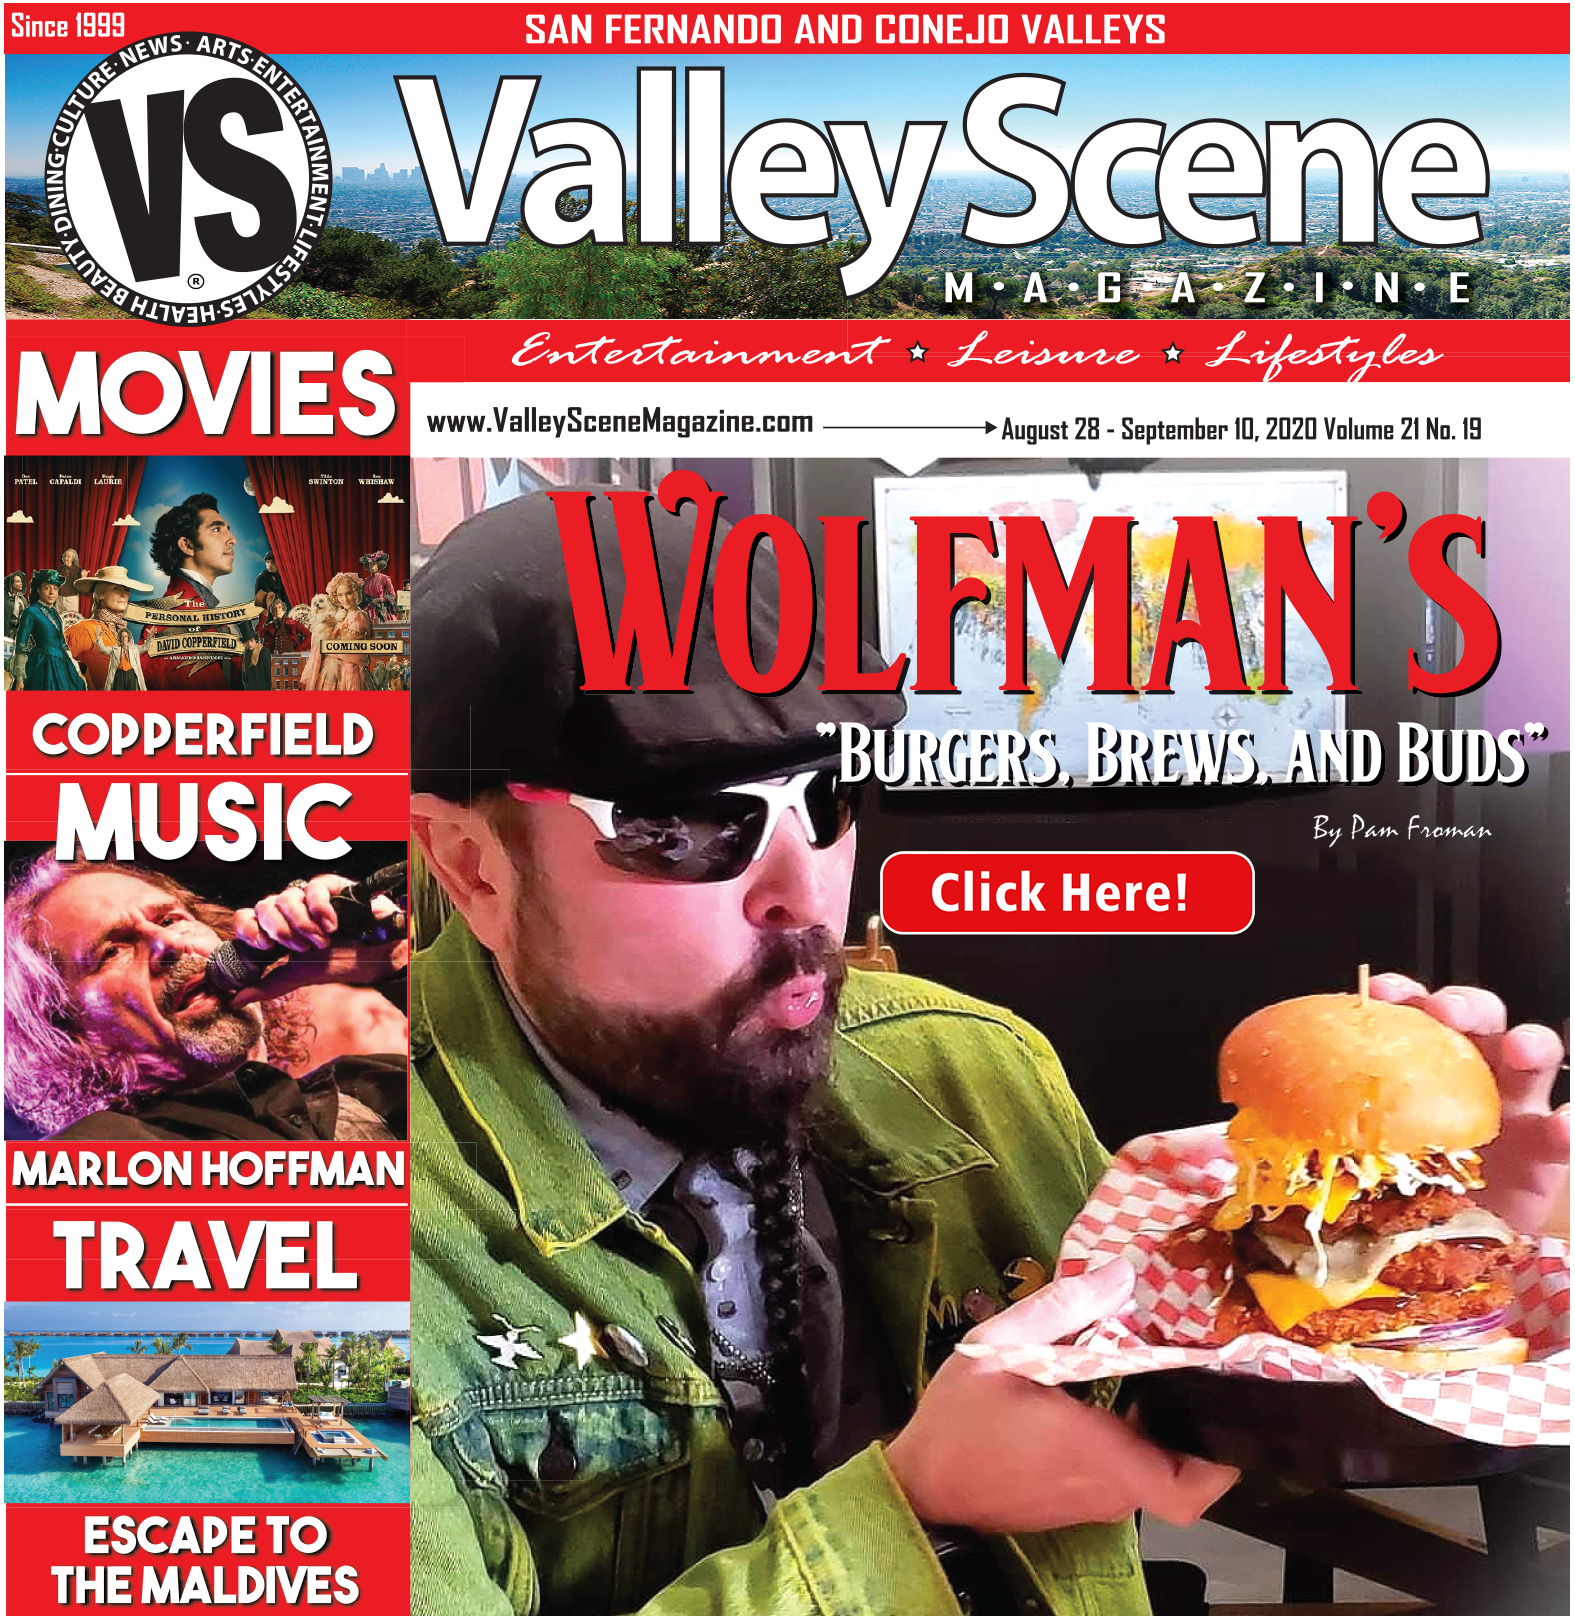 Valley Scene Article 1